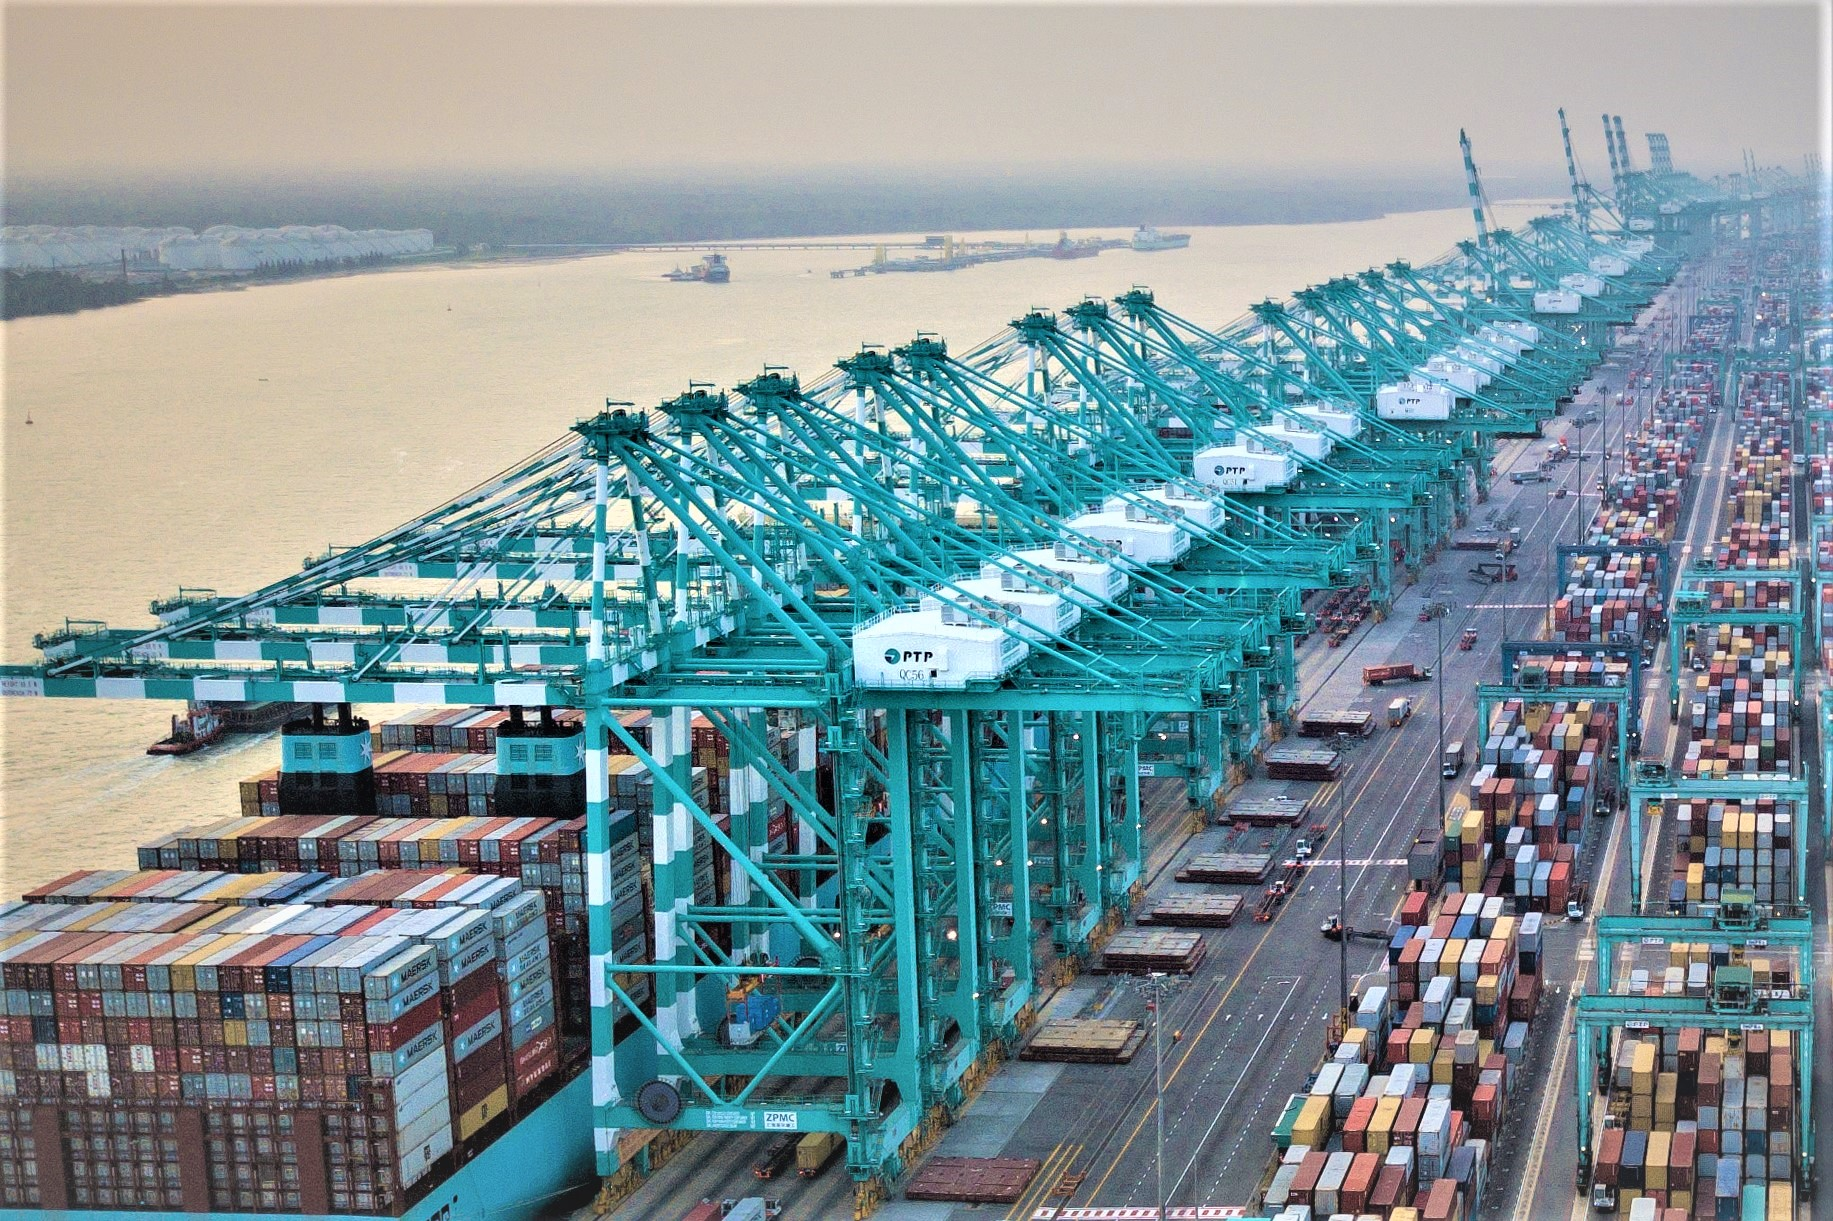 View of STS cranes lined up at hte Port of Tanjung Pelepas